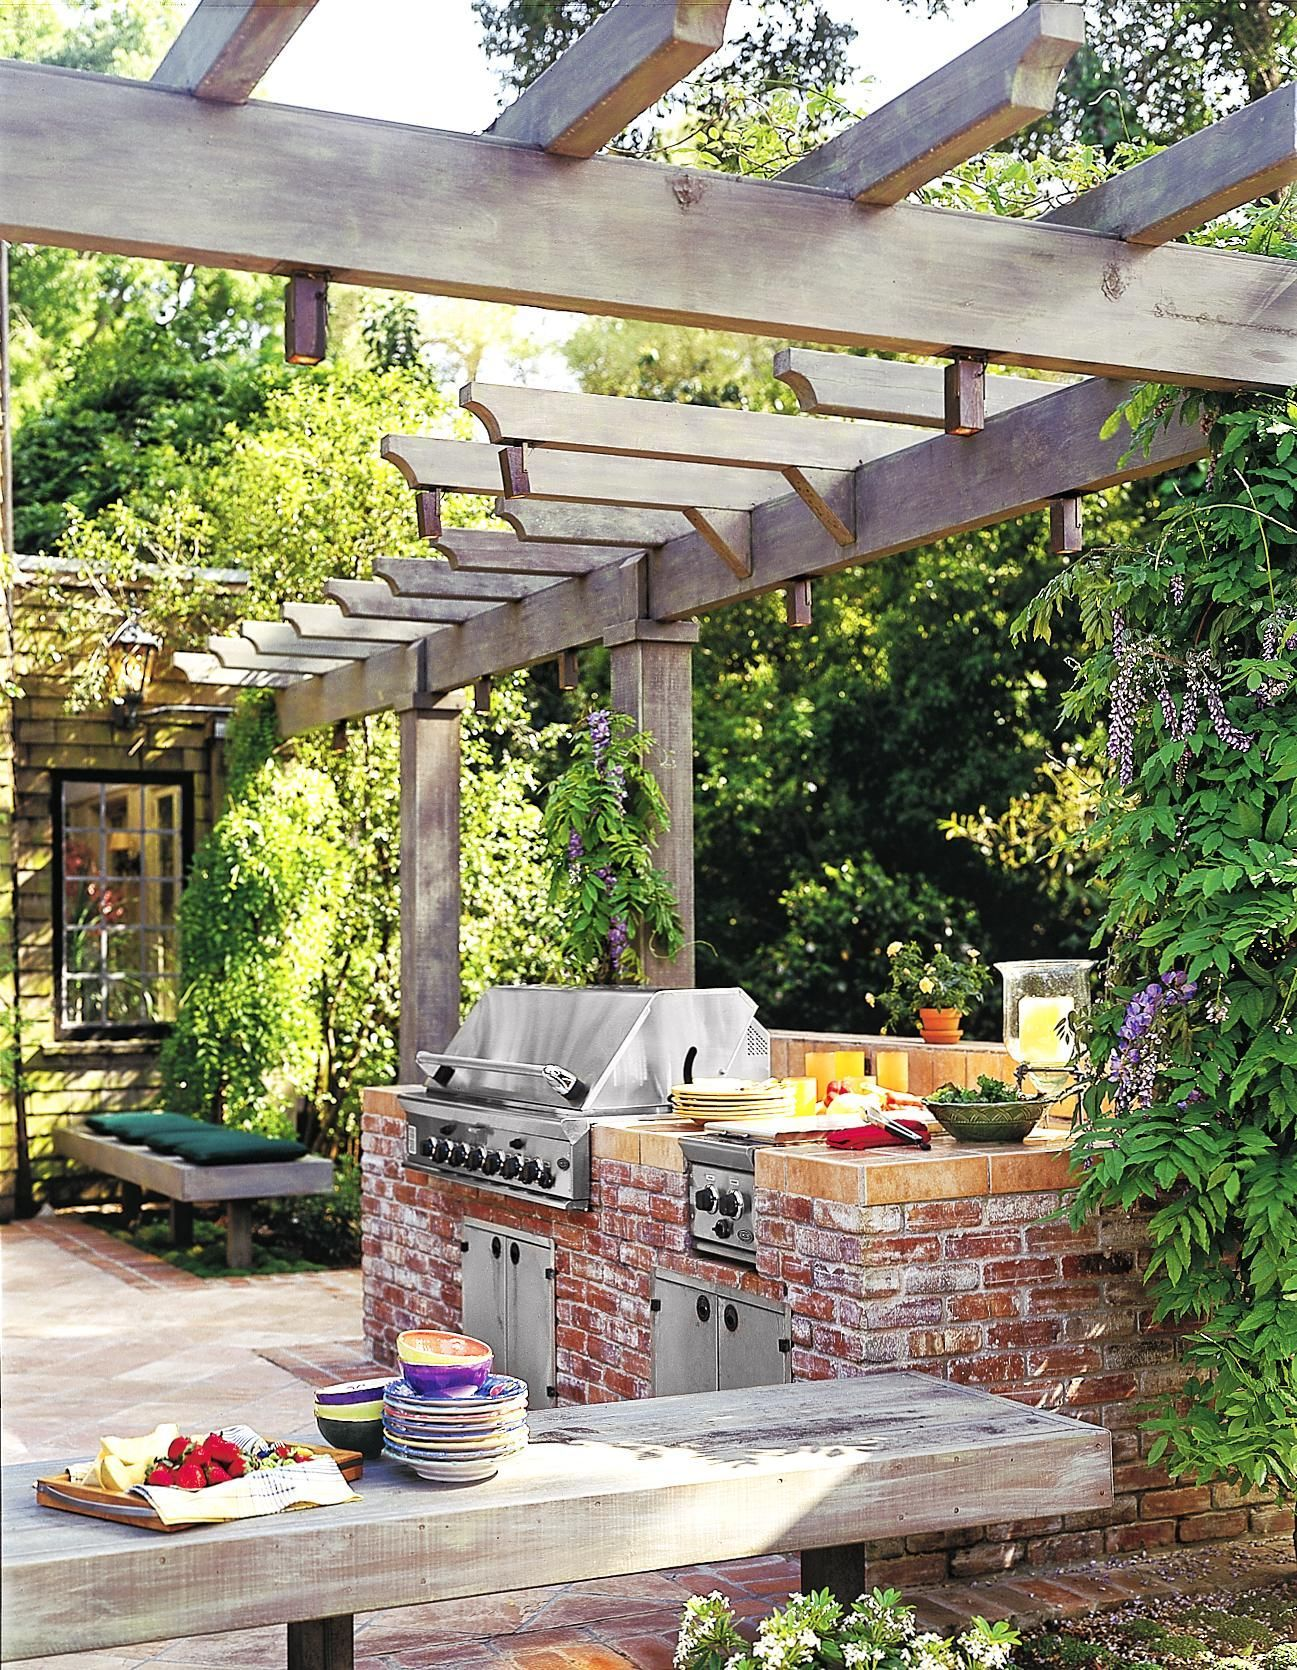 Whether you covet a grill and foodprep station on wheels or a built